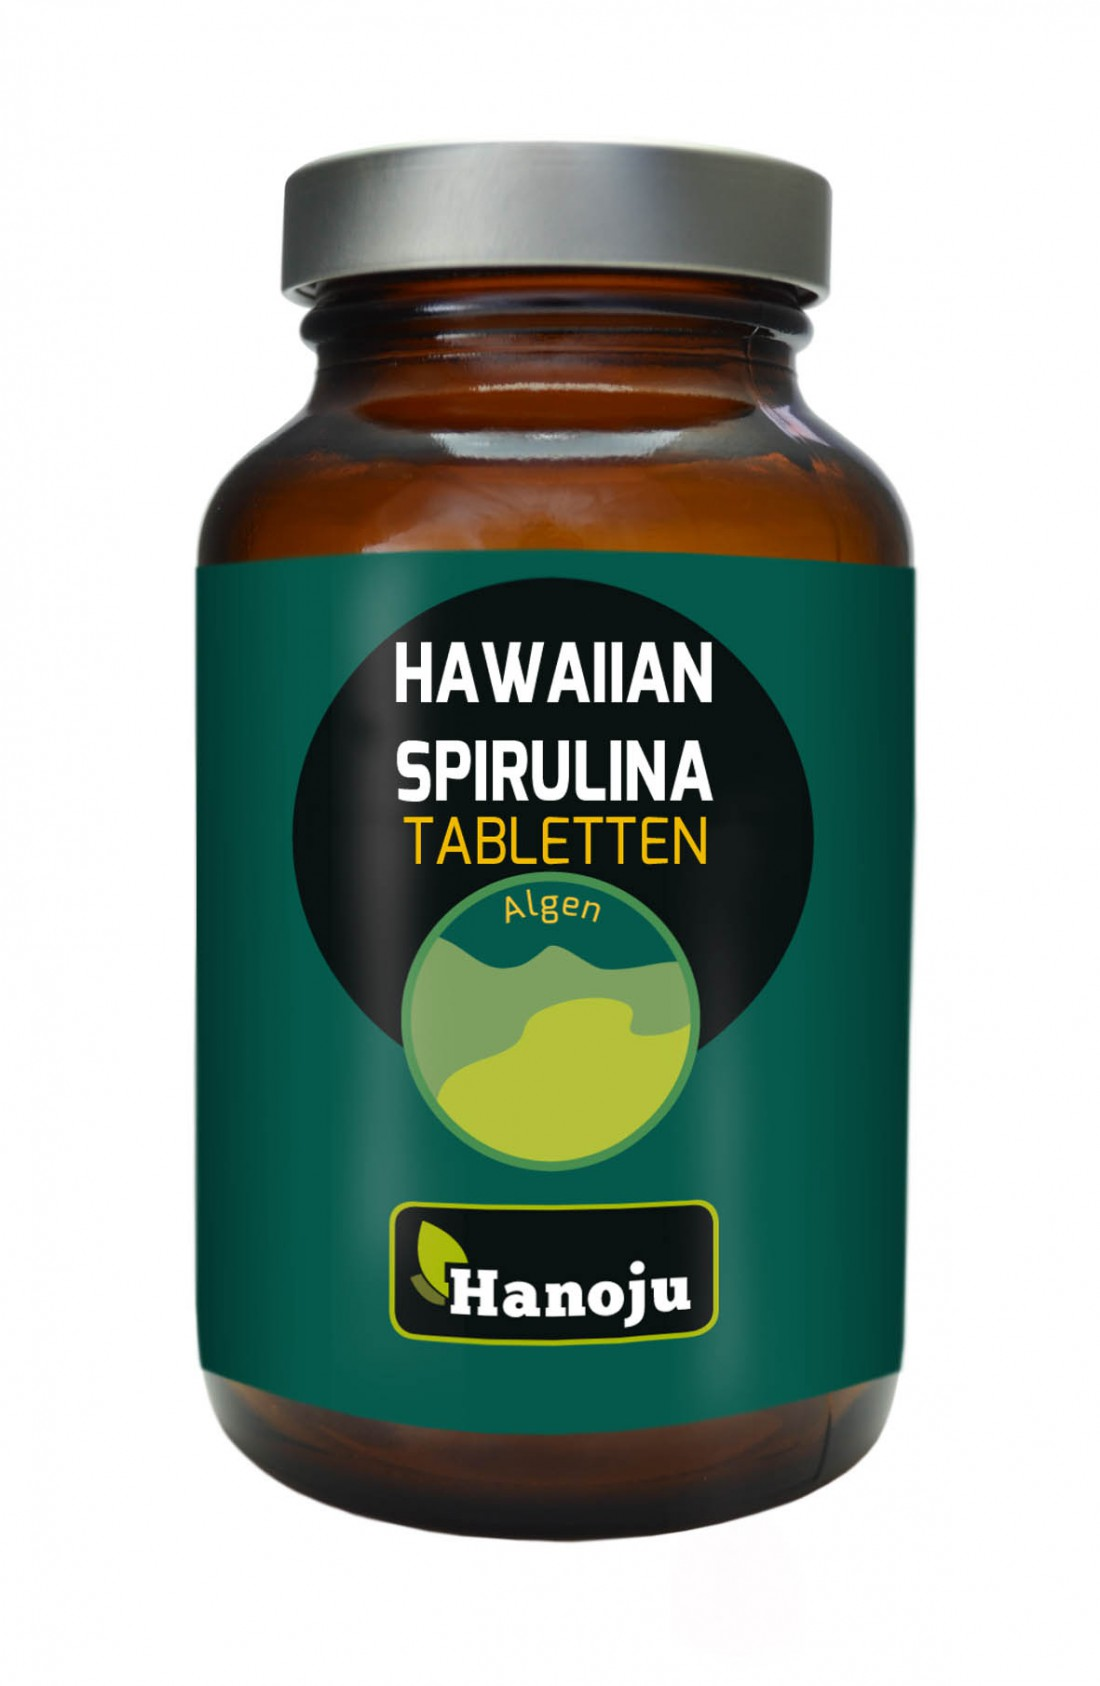 Hawaiian-Spirulina-Tabletten-BG-kl-68